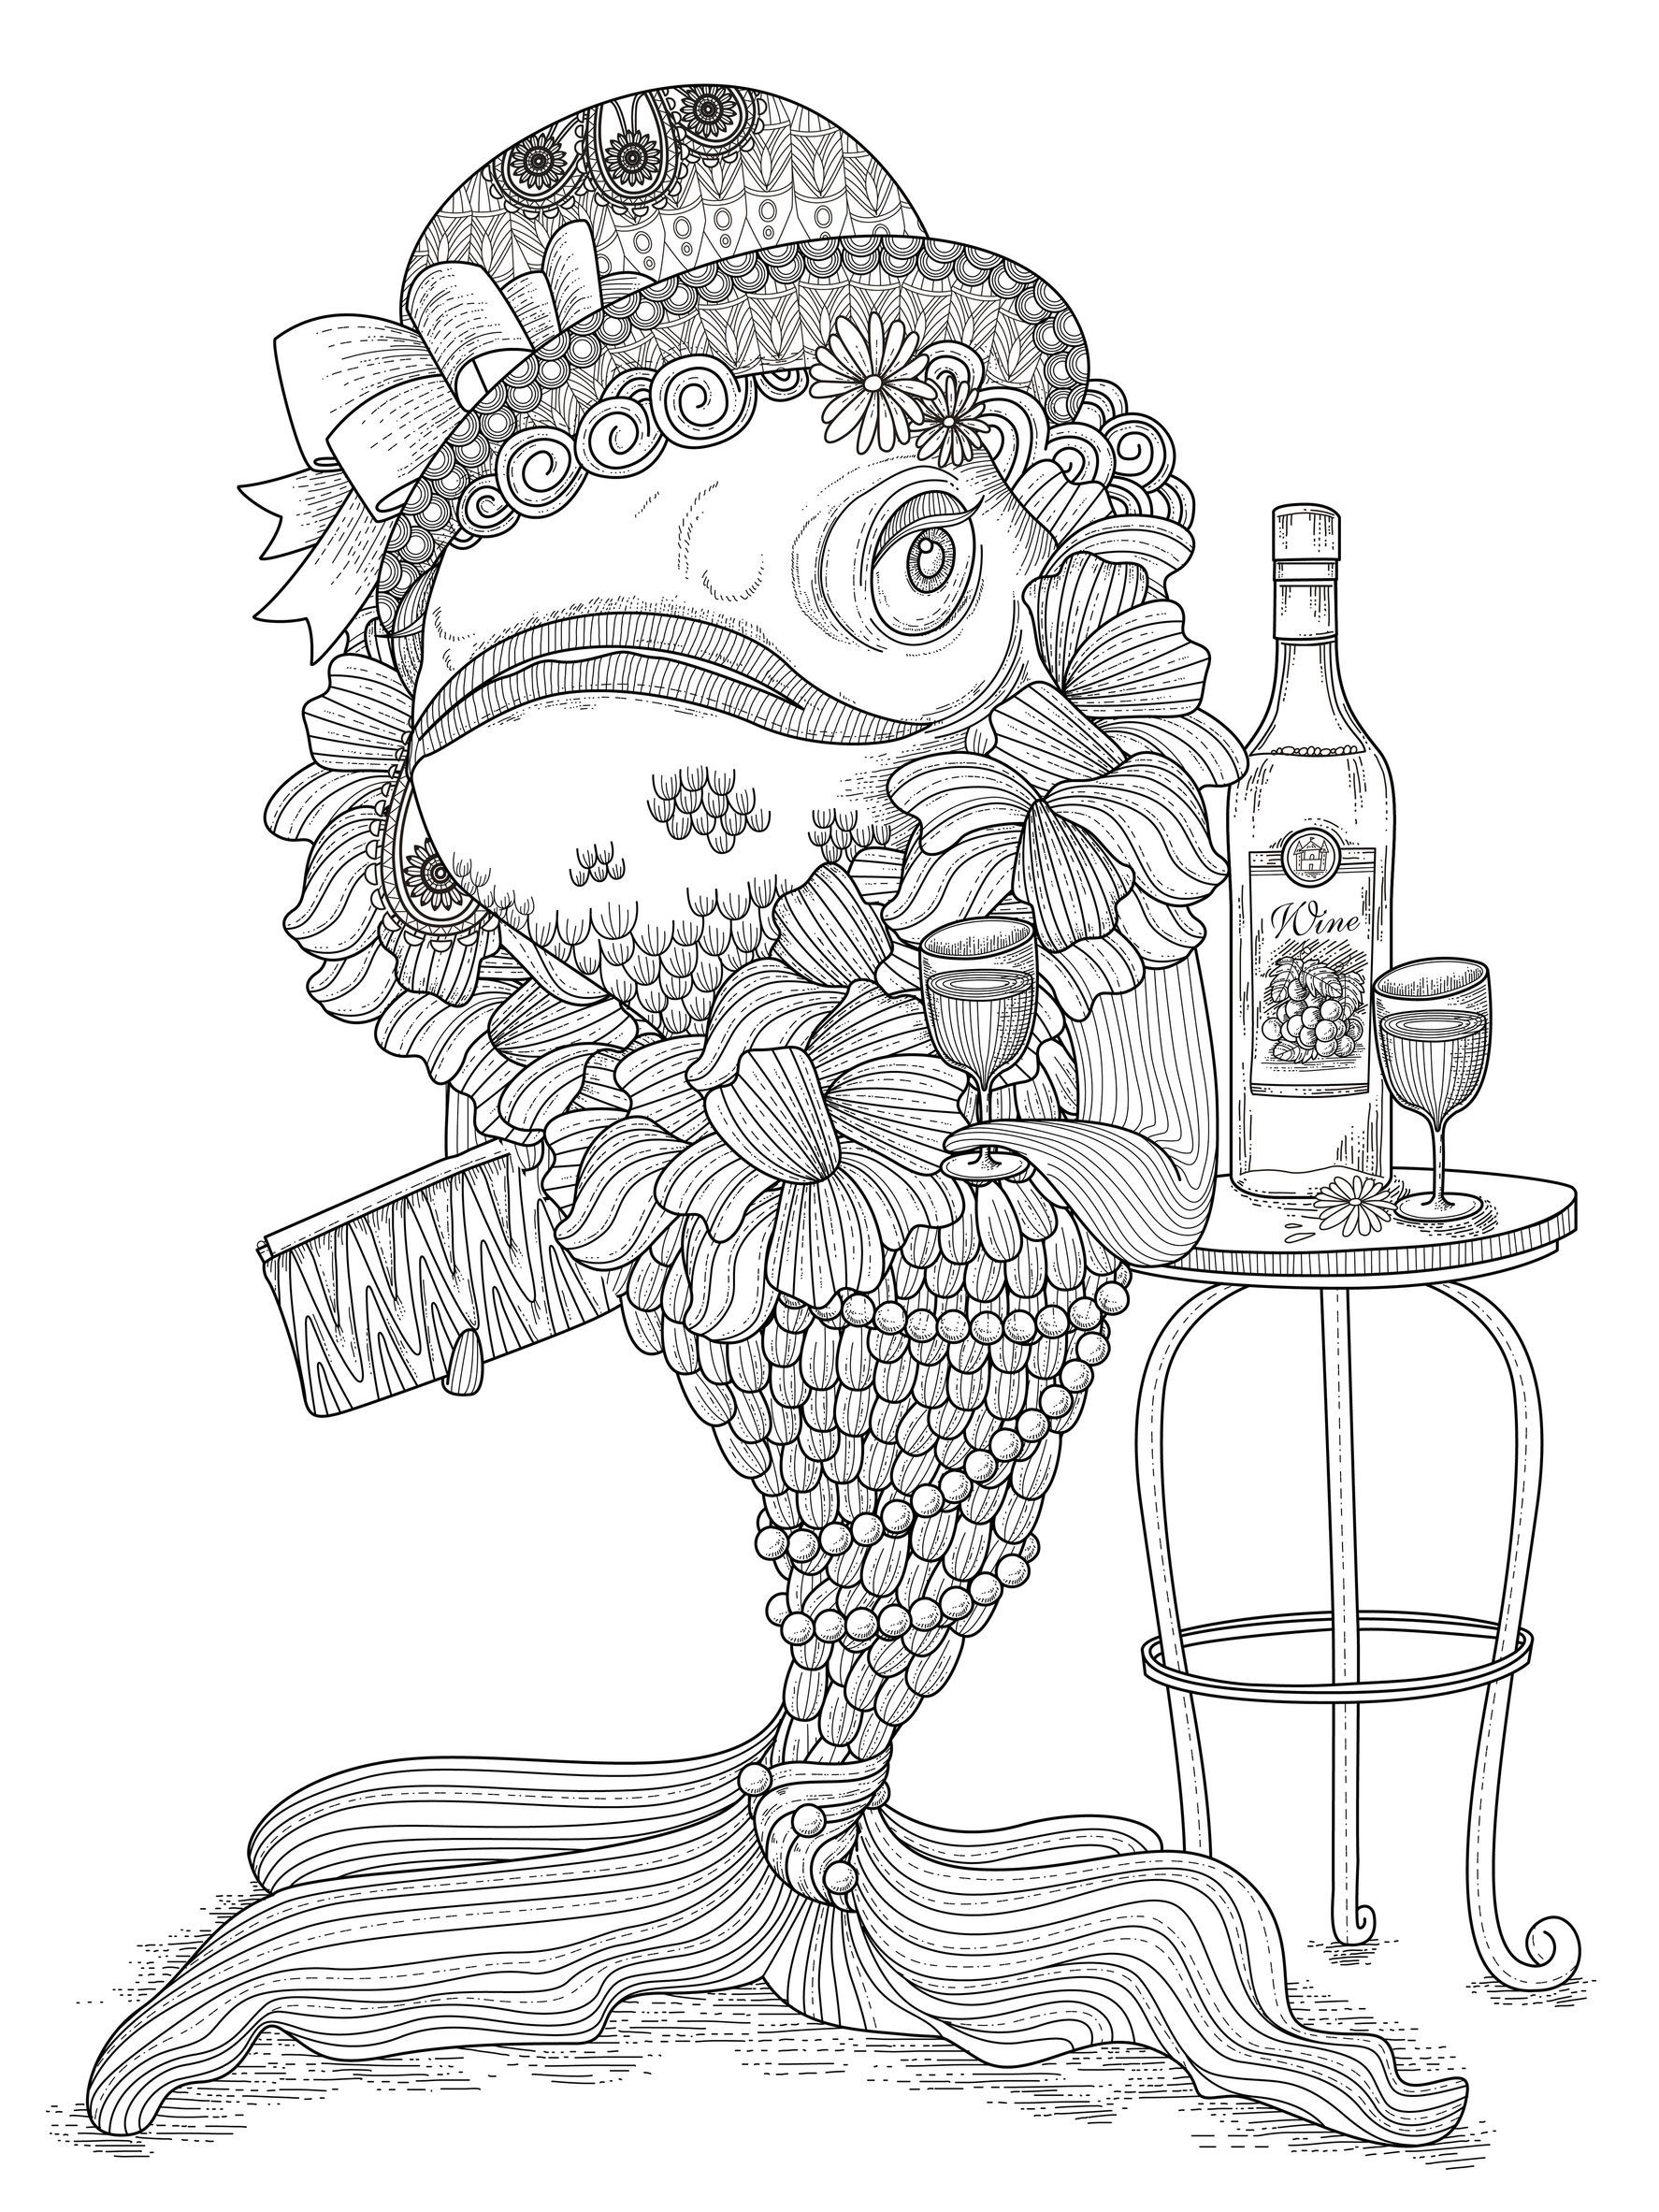 An coloring page of a fish very funny from the gallery for Adult fish coloring pages